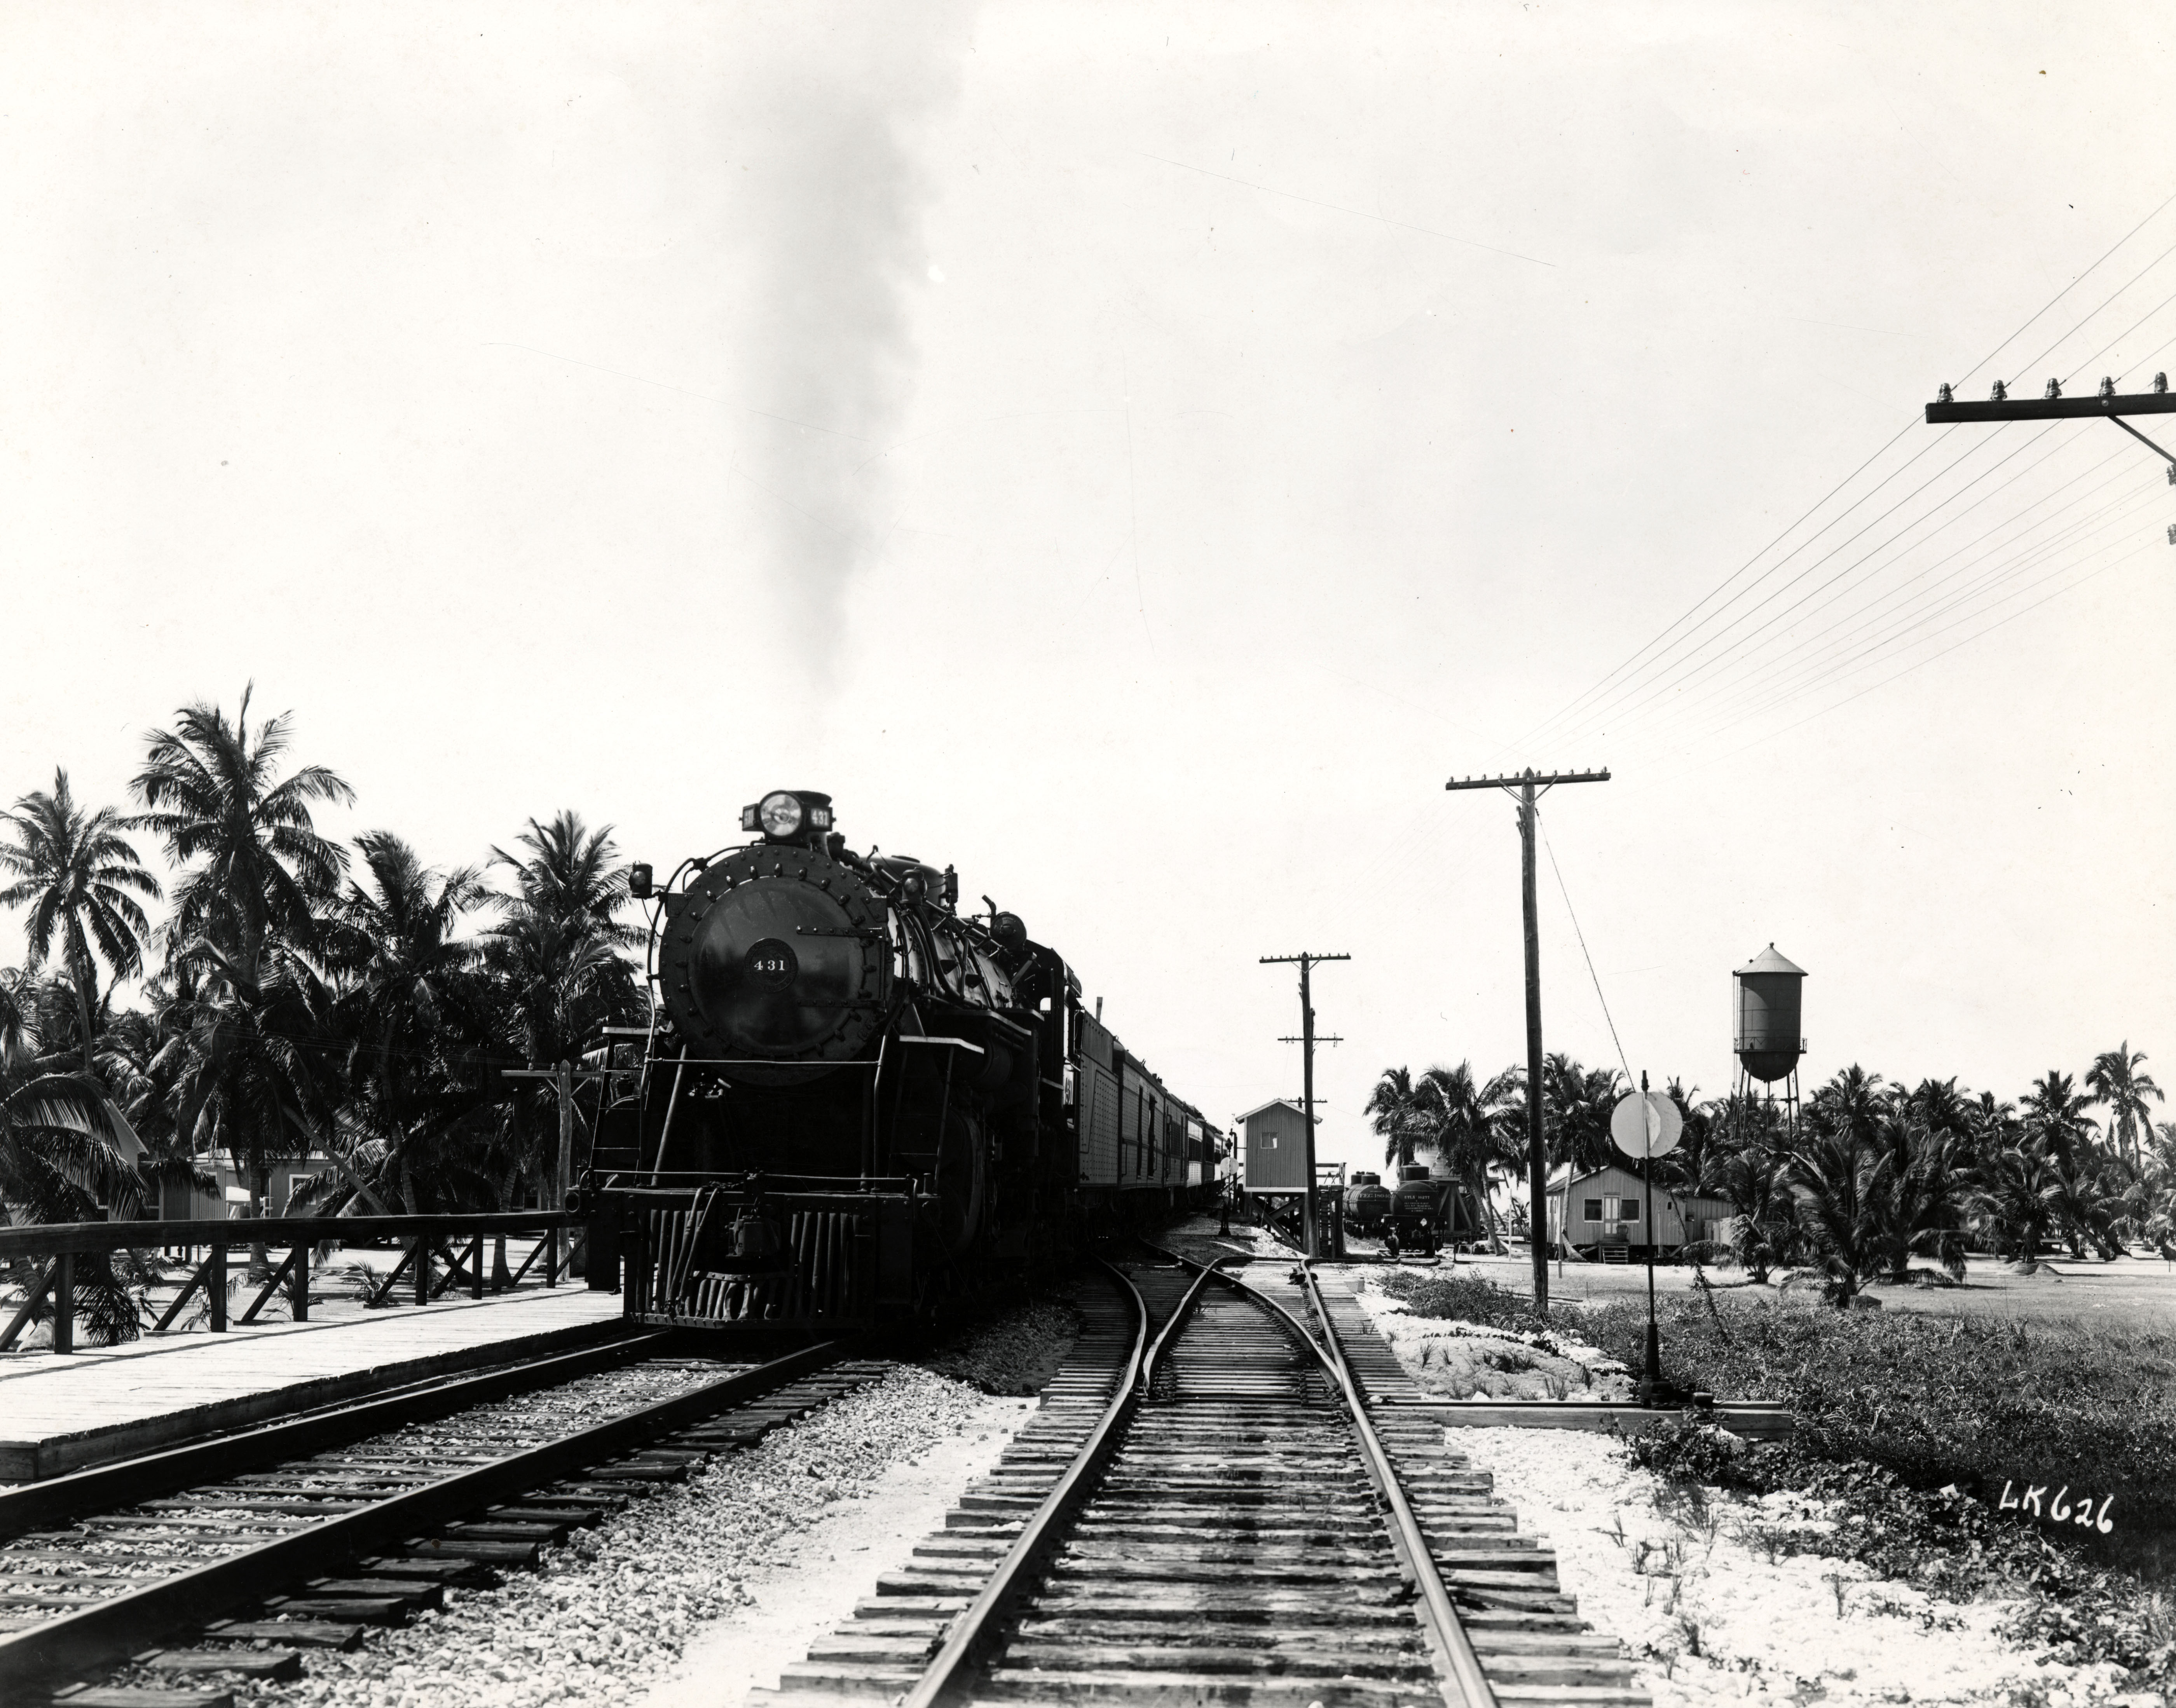 Florida East Coast Railway, Key West Extension. Train at Long Key. Gift of Ramon Davis. Retrieved from the Florida Keys Public Library